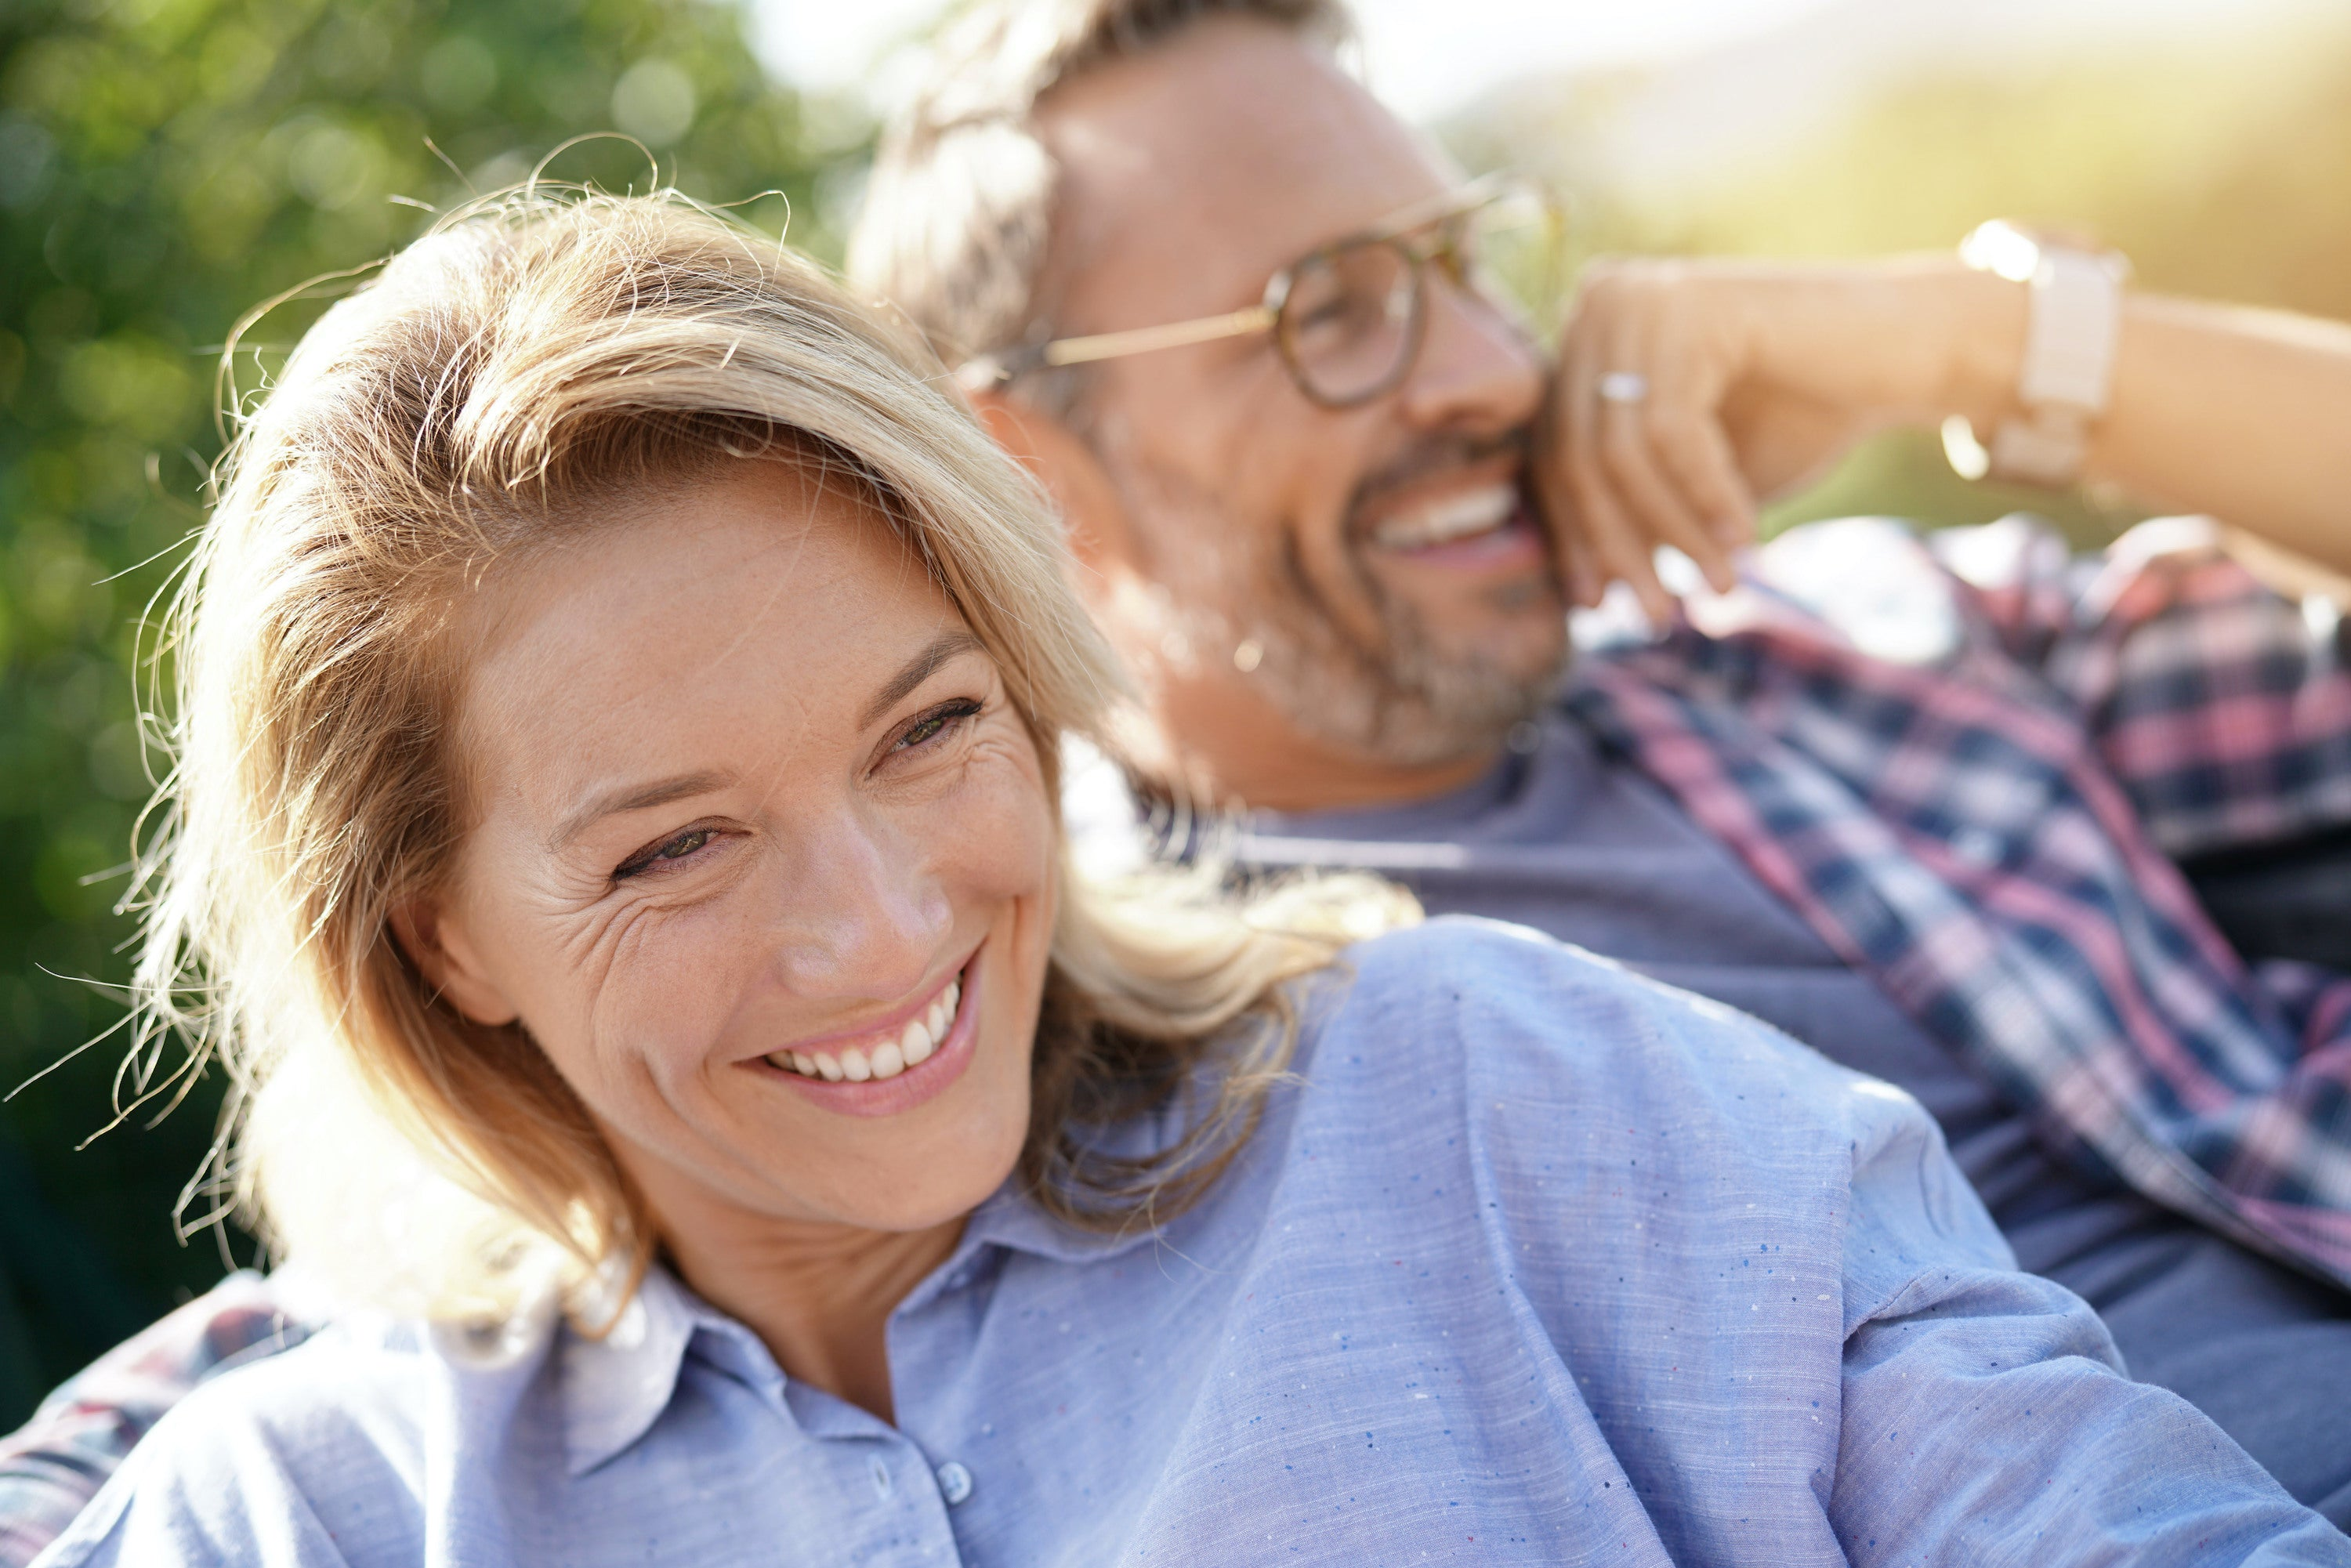 middle-aged man and woman smiling outside